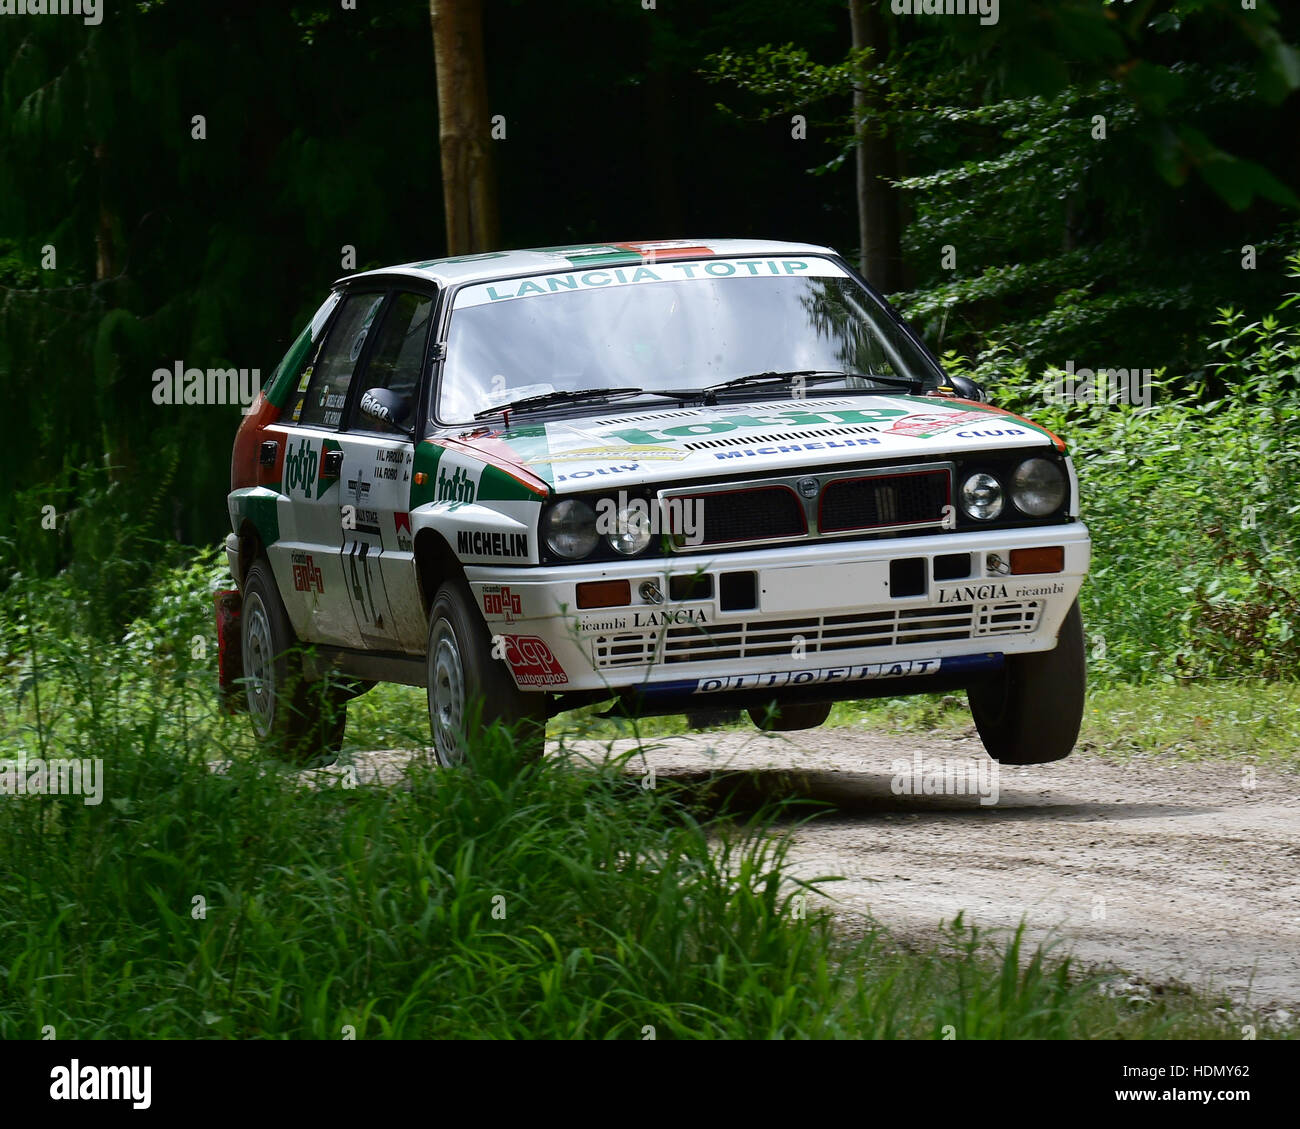 Pat horan lancia delta integrale forest rally stage goodwood pat horan lancia delta integrale forest rally stage goodwood festival of speed 2016 automobiles cars entertainment festival of speed forest r publicscrutiny Images